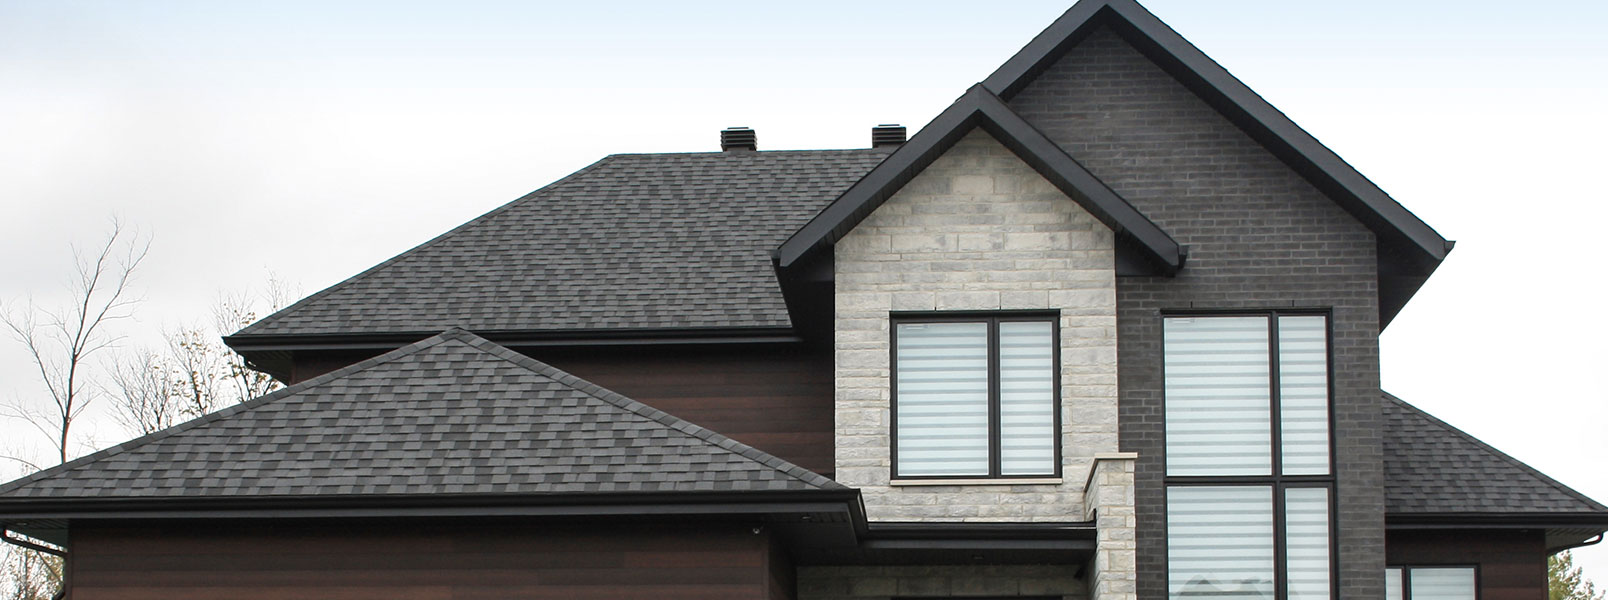 Pitched Roofs: What Material Should You Choose?